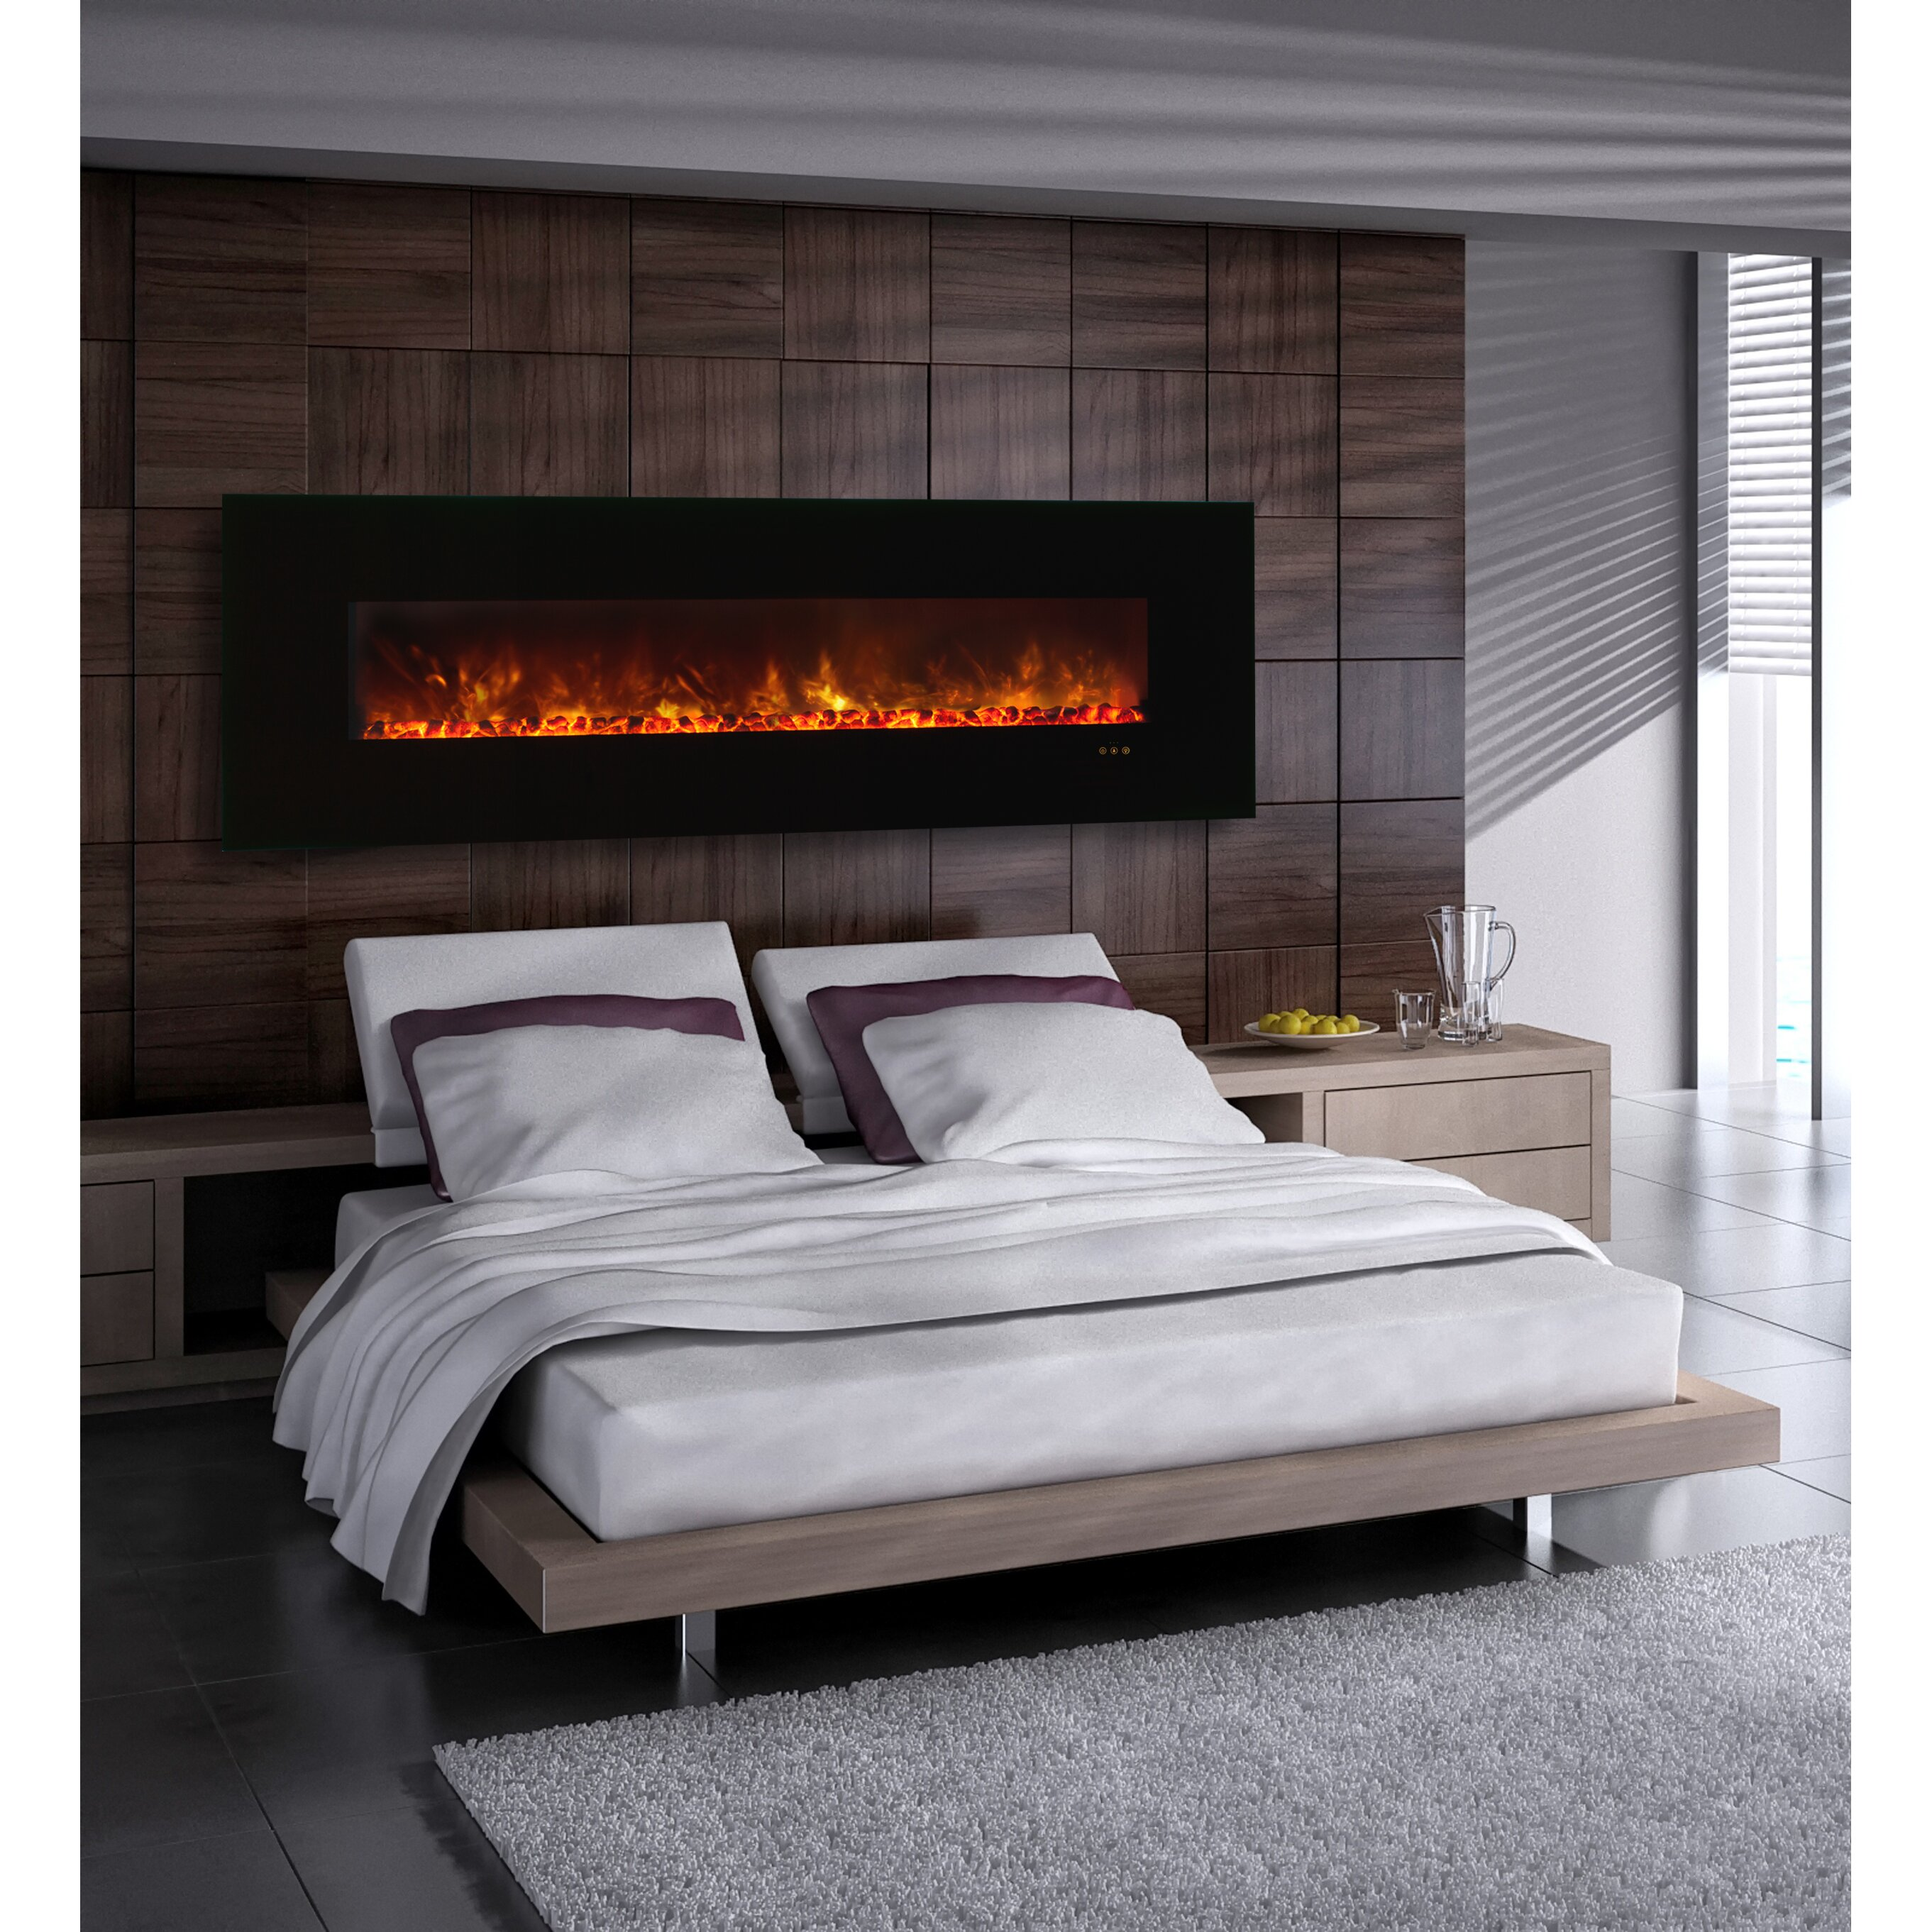 Bedroom electric fireplace - Modern Flames Clx Series Ambiance Custom Linear Delux Wall Mount Electric Fireplace